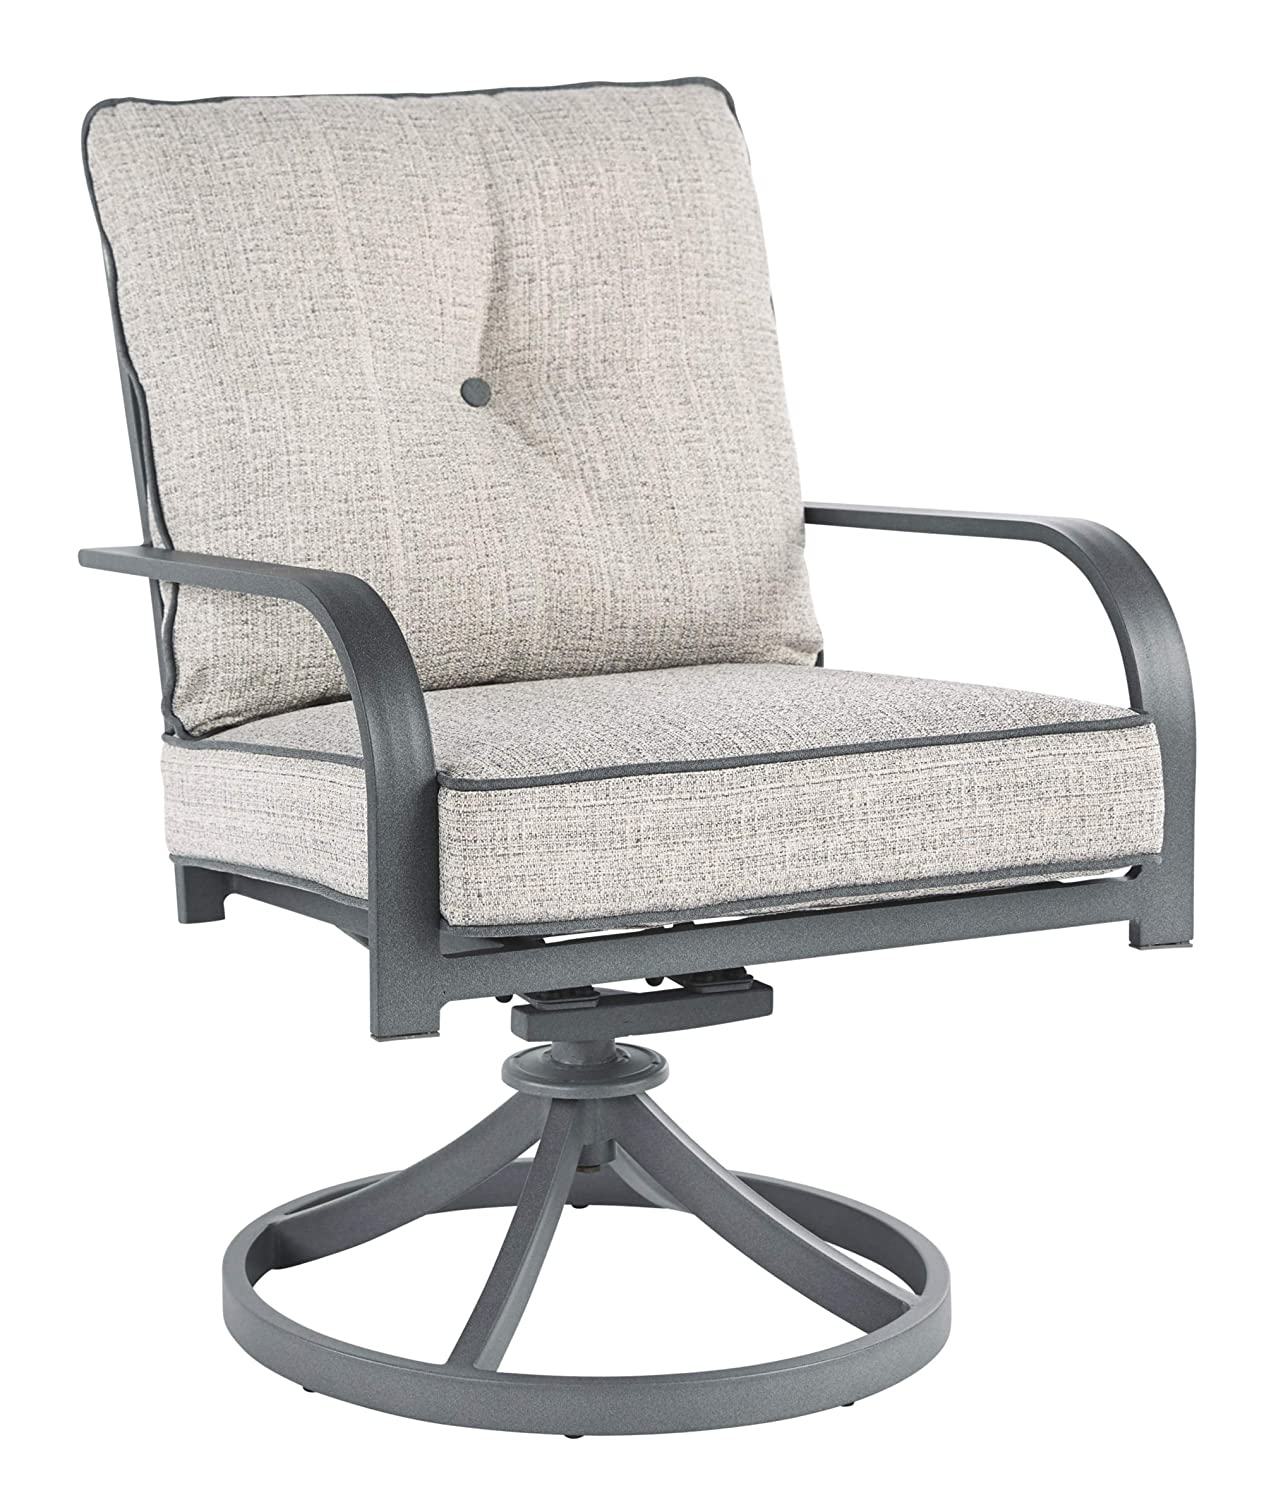 Signature Design by Ashley P325-601A Donnalee Bay Swivel Lounge Chair 2 CN , Dark Gray